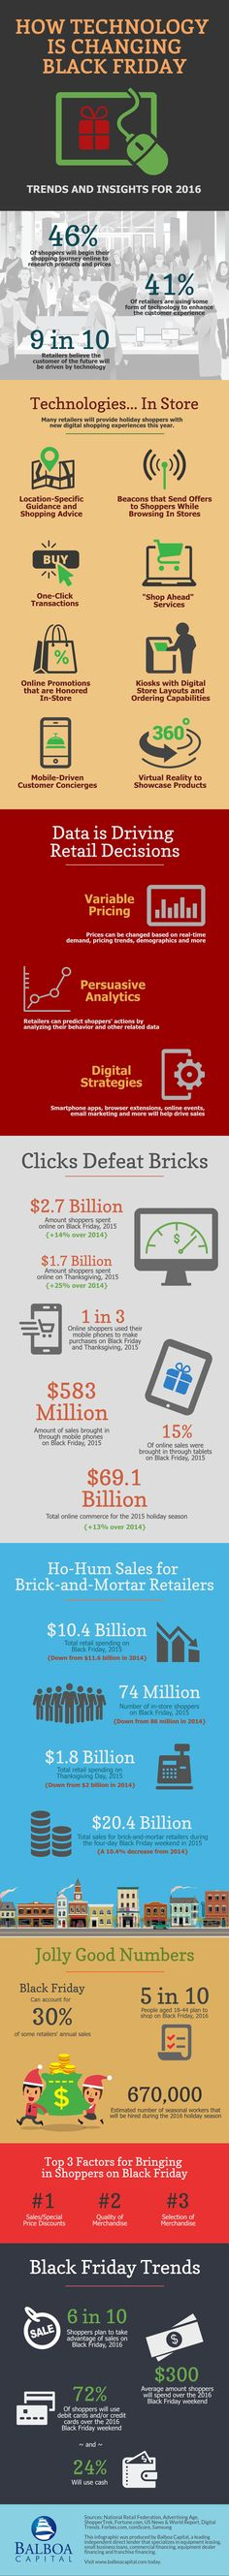 Technology is changing Black Friday for retailers and millions of holiday shoppers.  #shop #shopping #holiday #holidays #retail #retaildesign #sale #sales #technology #tech #trends #mobile #buy #shoponline #infographic #infographics #blackfriday #christmas #balboacapital